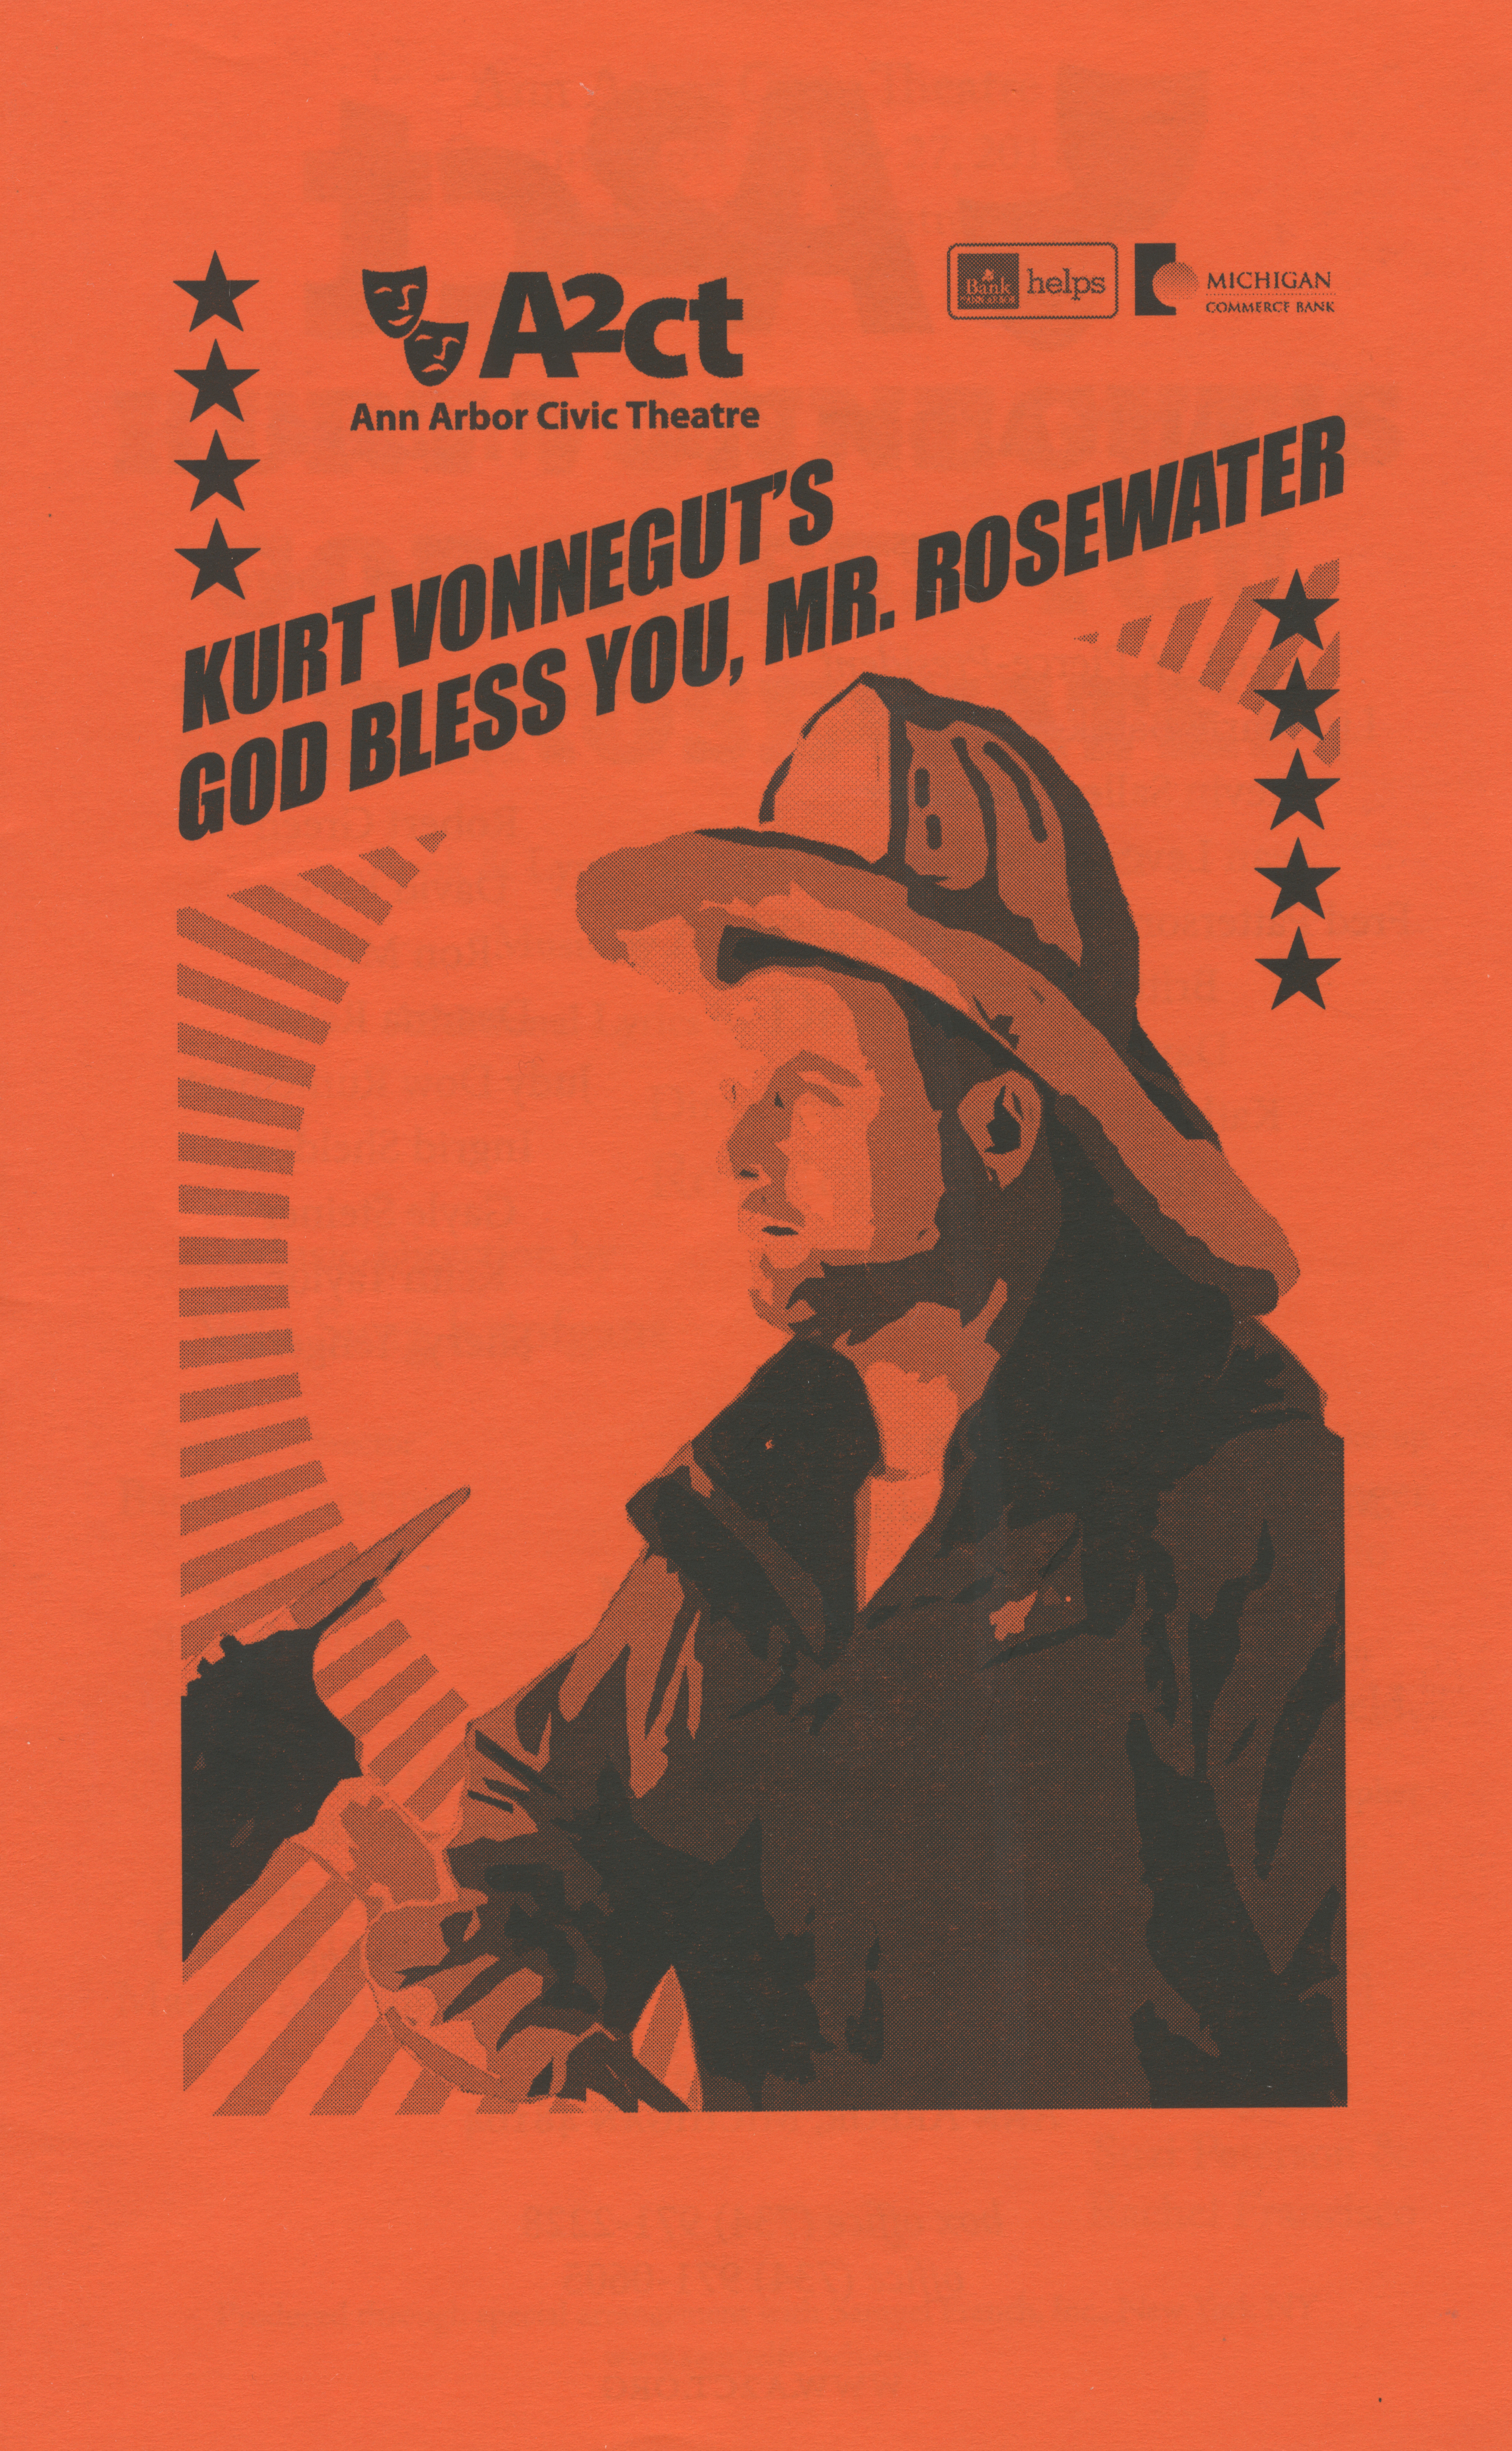 Ann Arbor Civic Theatre Program: God Bless You, Mr. Rosewater, January 27, 2011 image